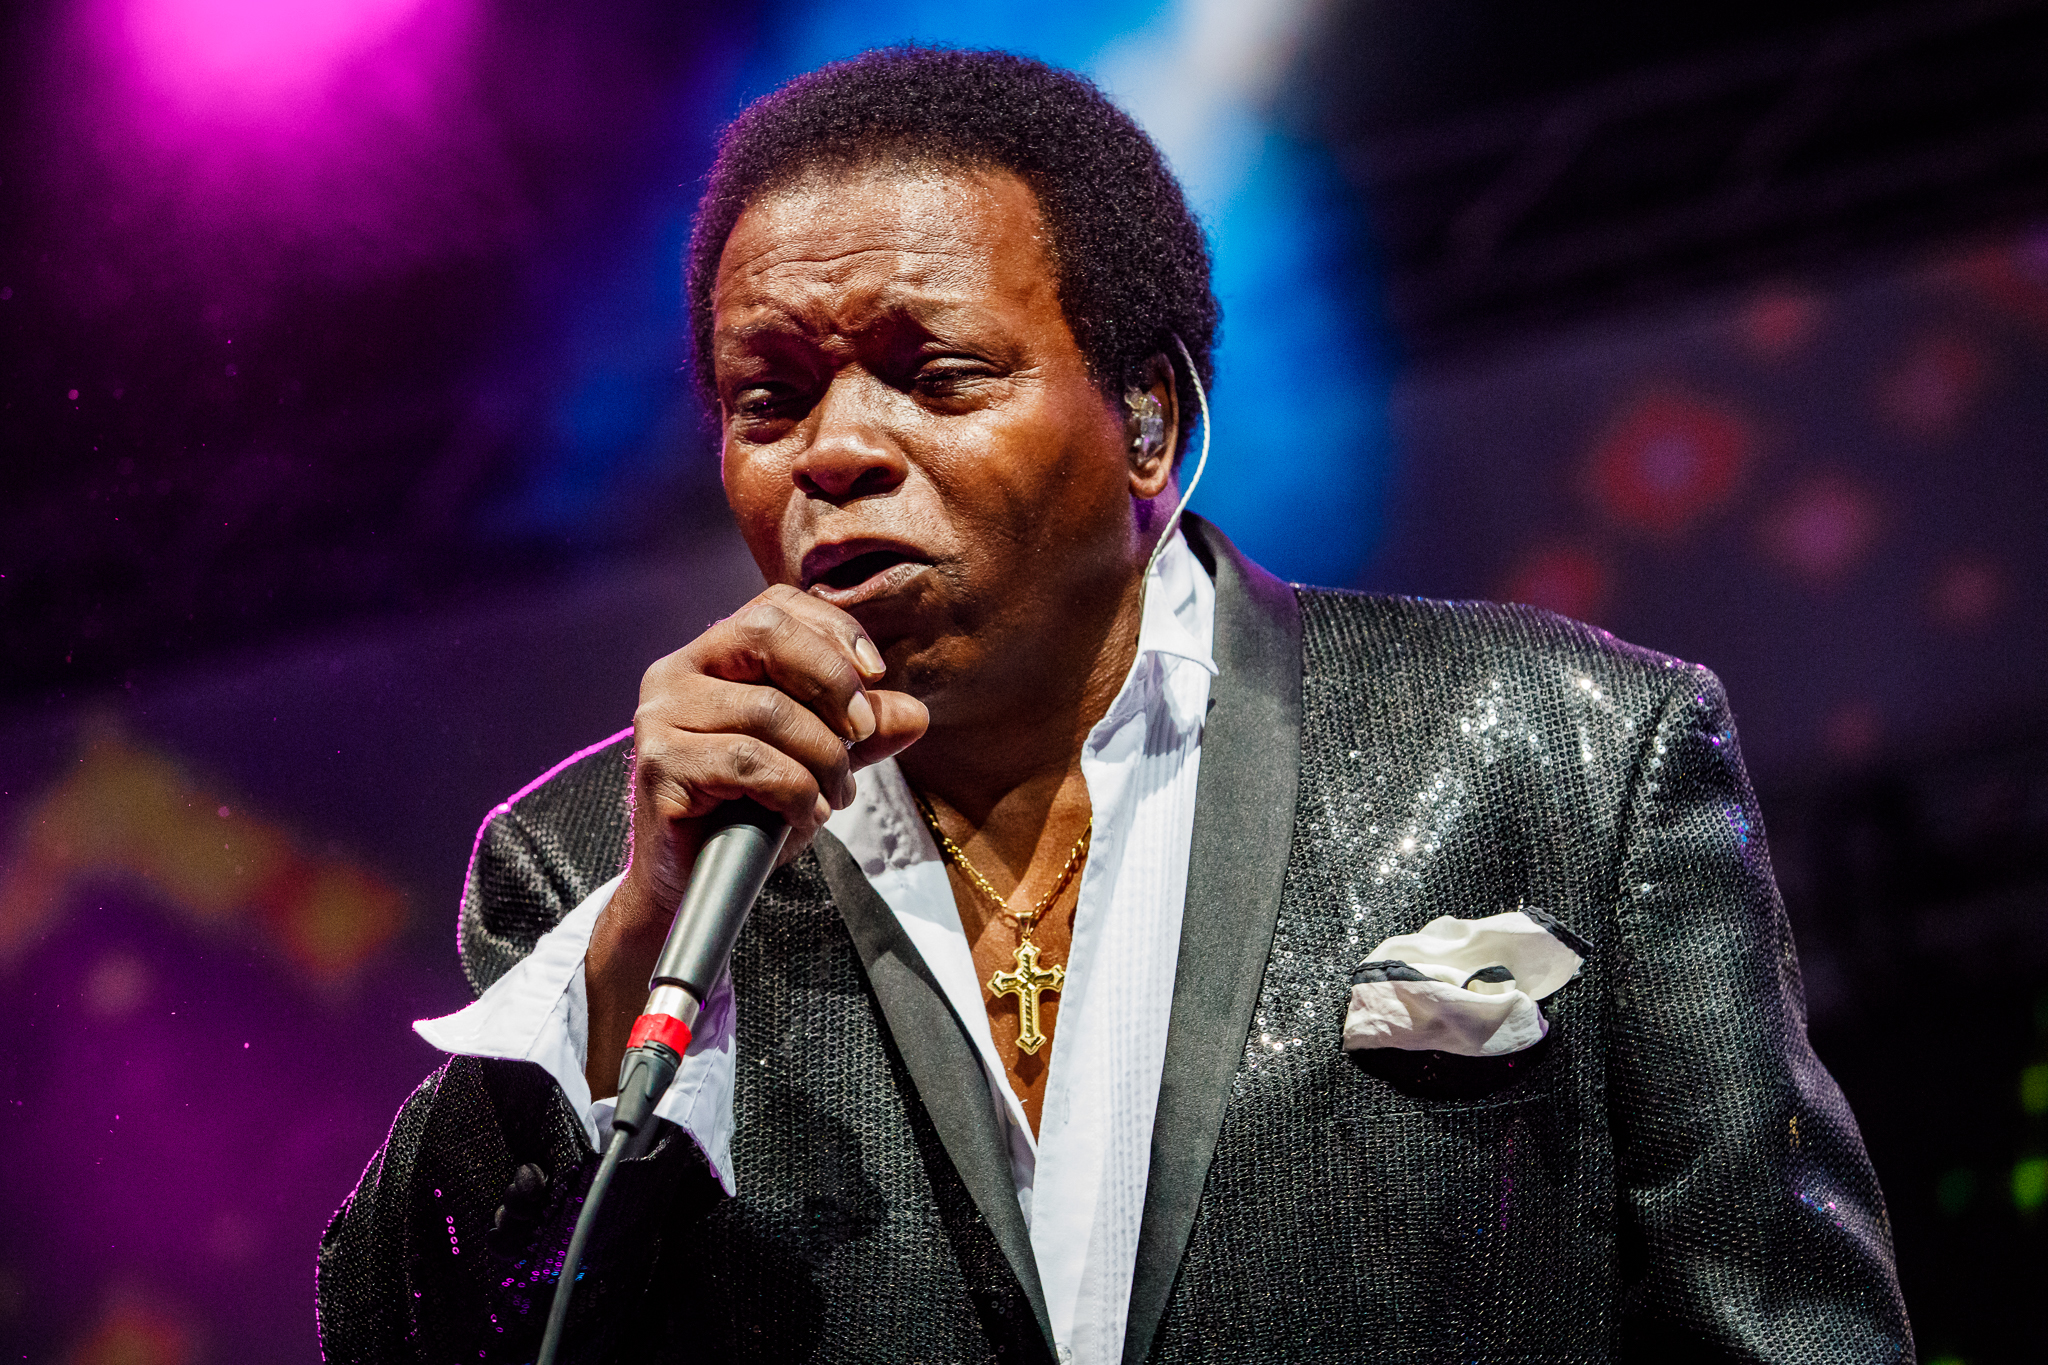 Lee Fields and the Expressions performing at Hopscotch Music Festival 2017 in Raleigh, NC - 9/8/2017 (photo by Matt Condon / @arcane93)